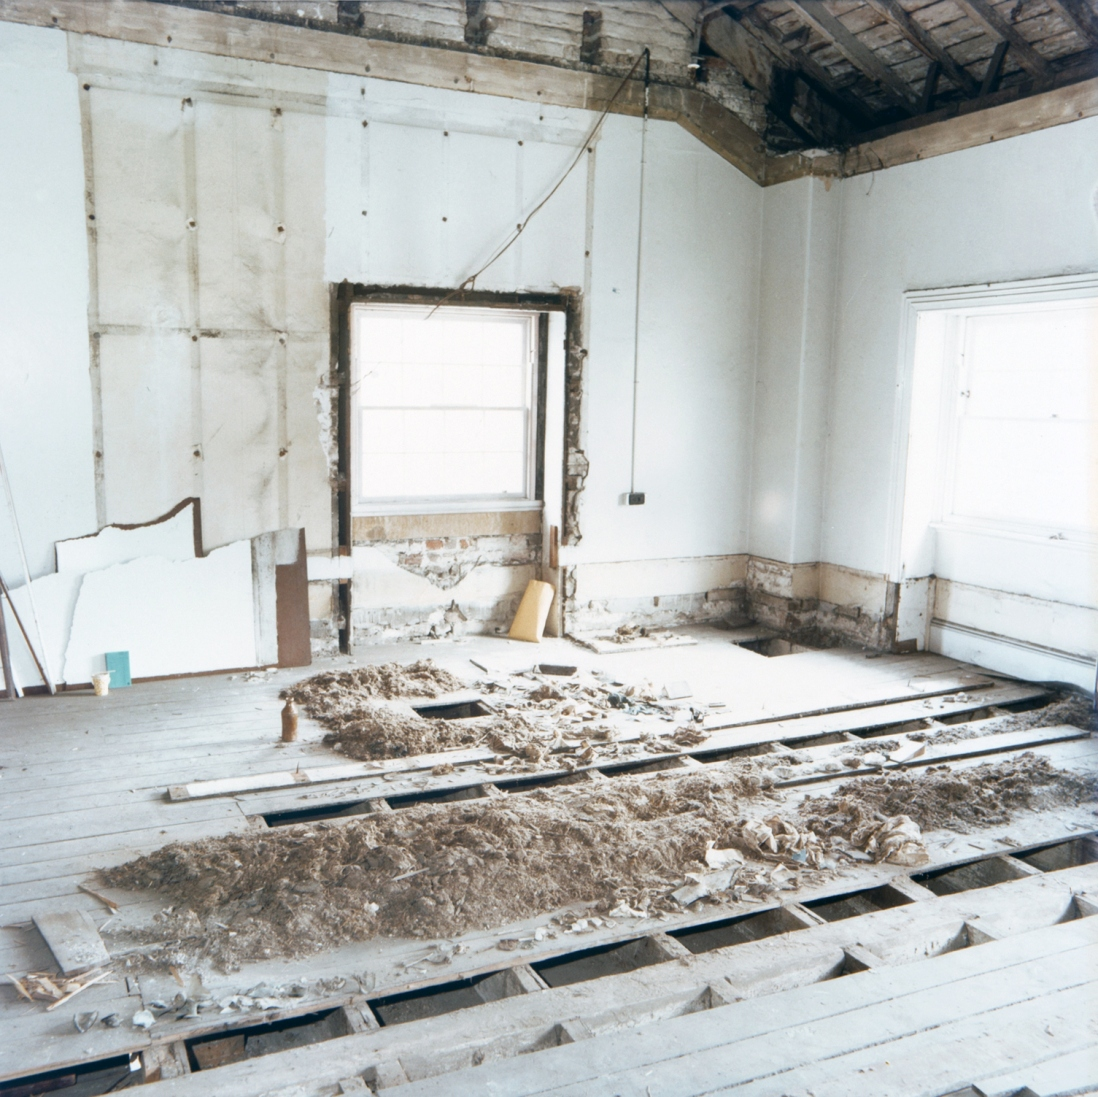 Room with wooden floorboards lifted in centre, with piles of extracted materials.